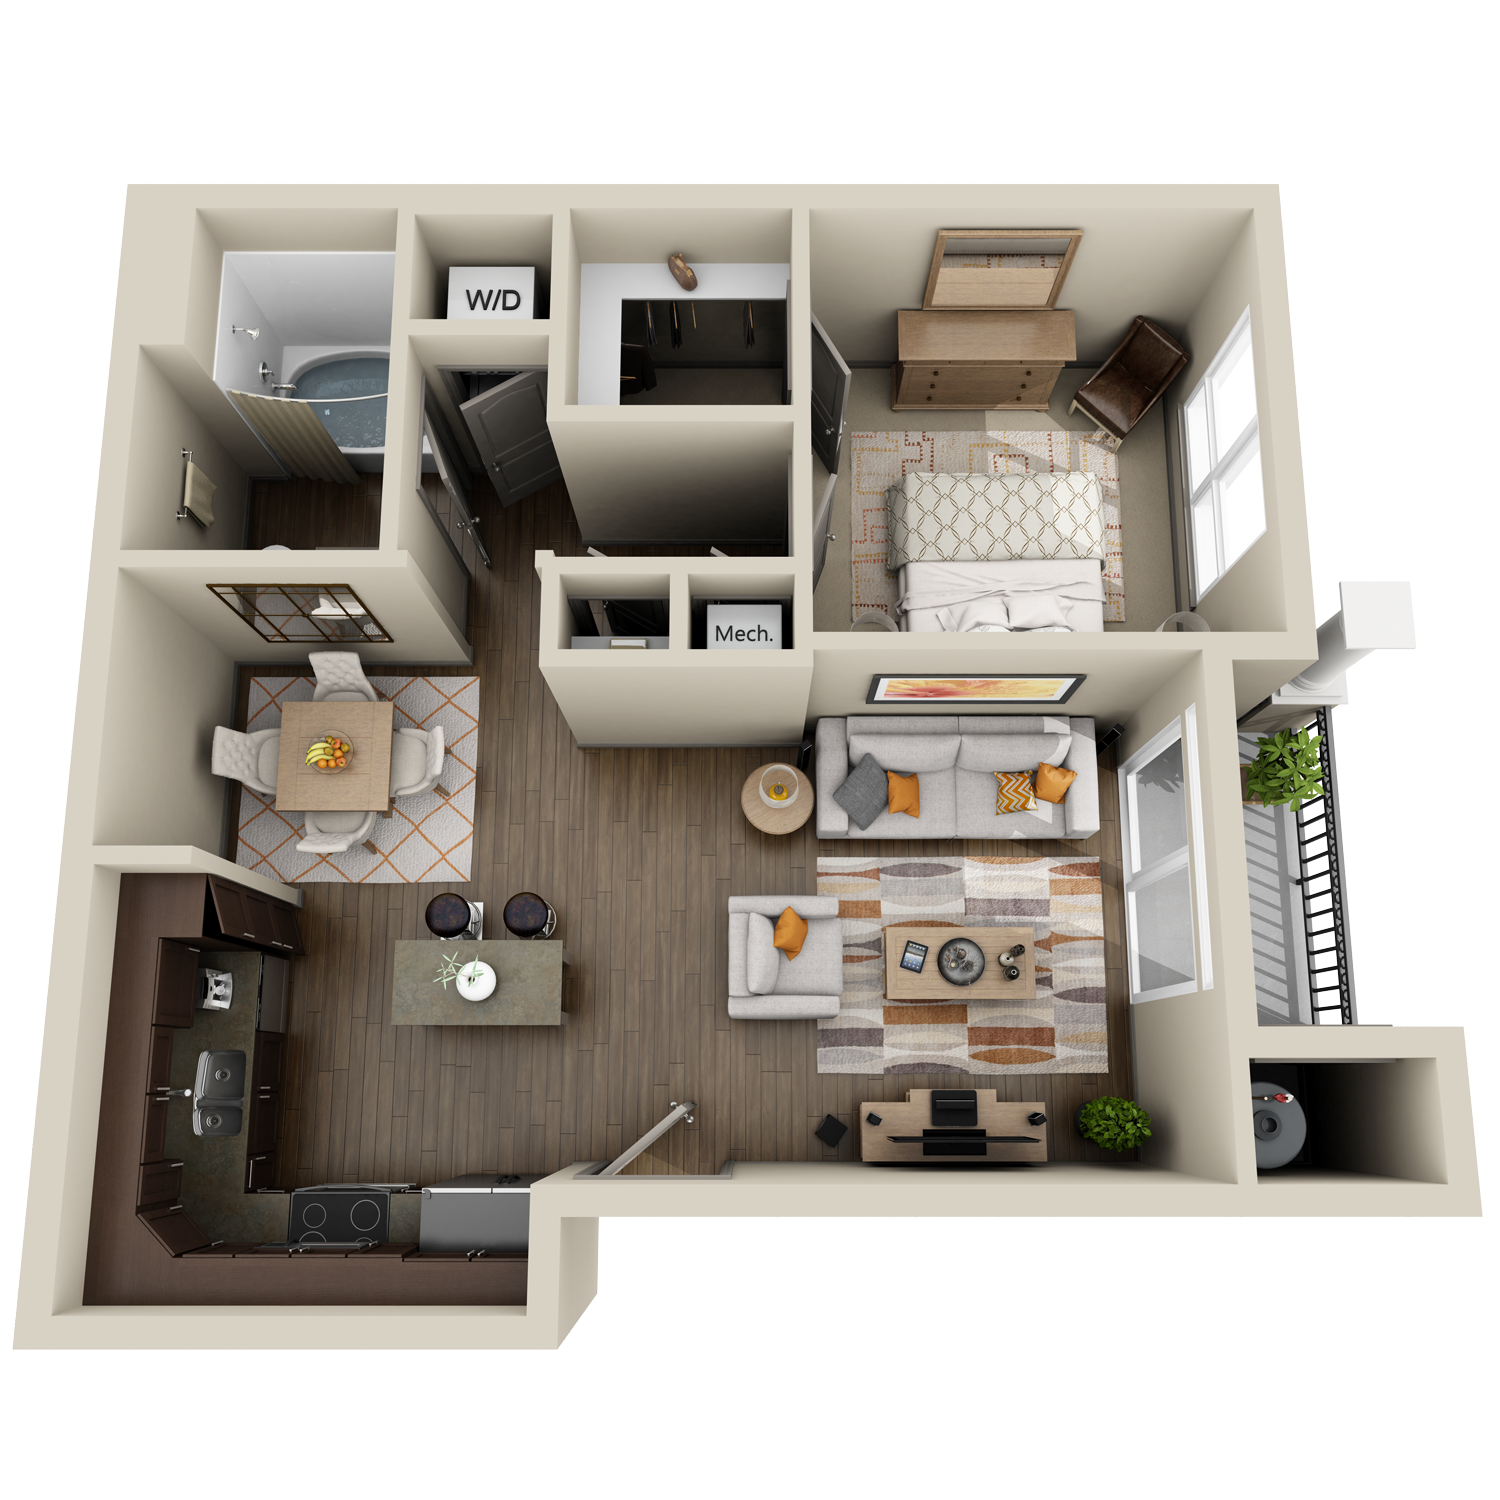 A2 floor plan featuring 1 bed and 1 bath